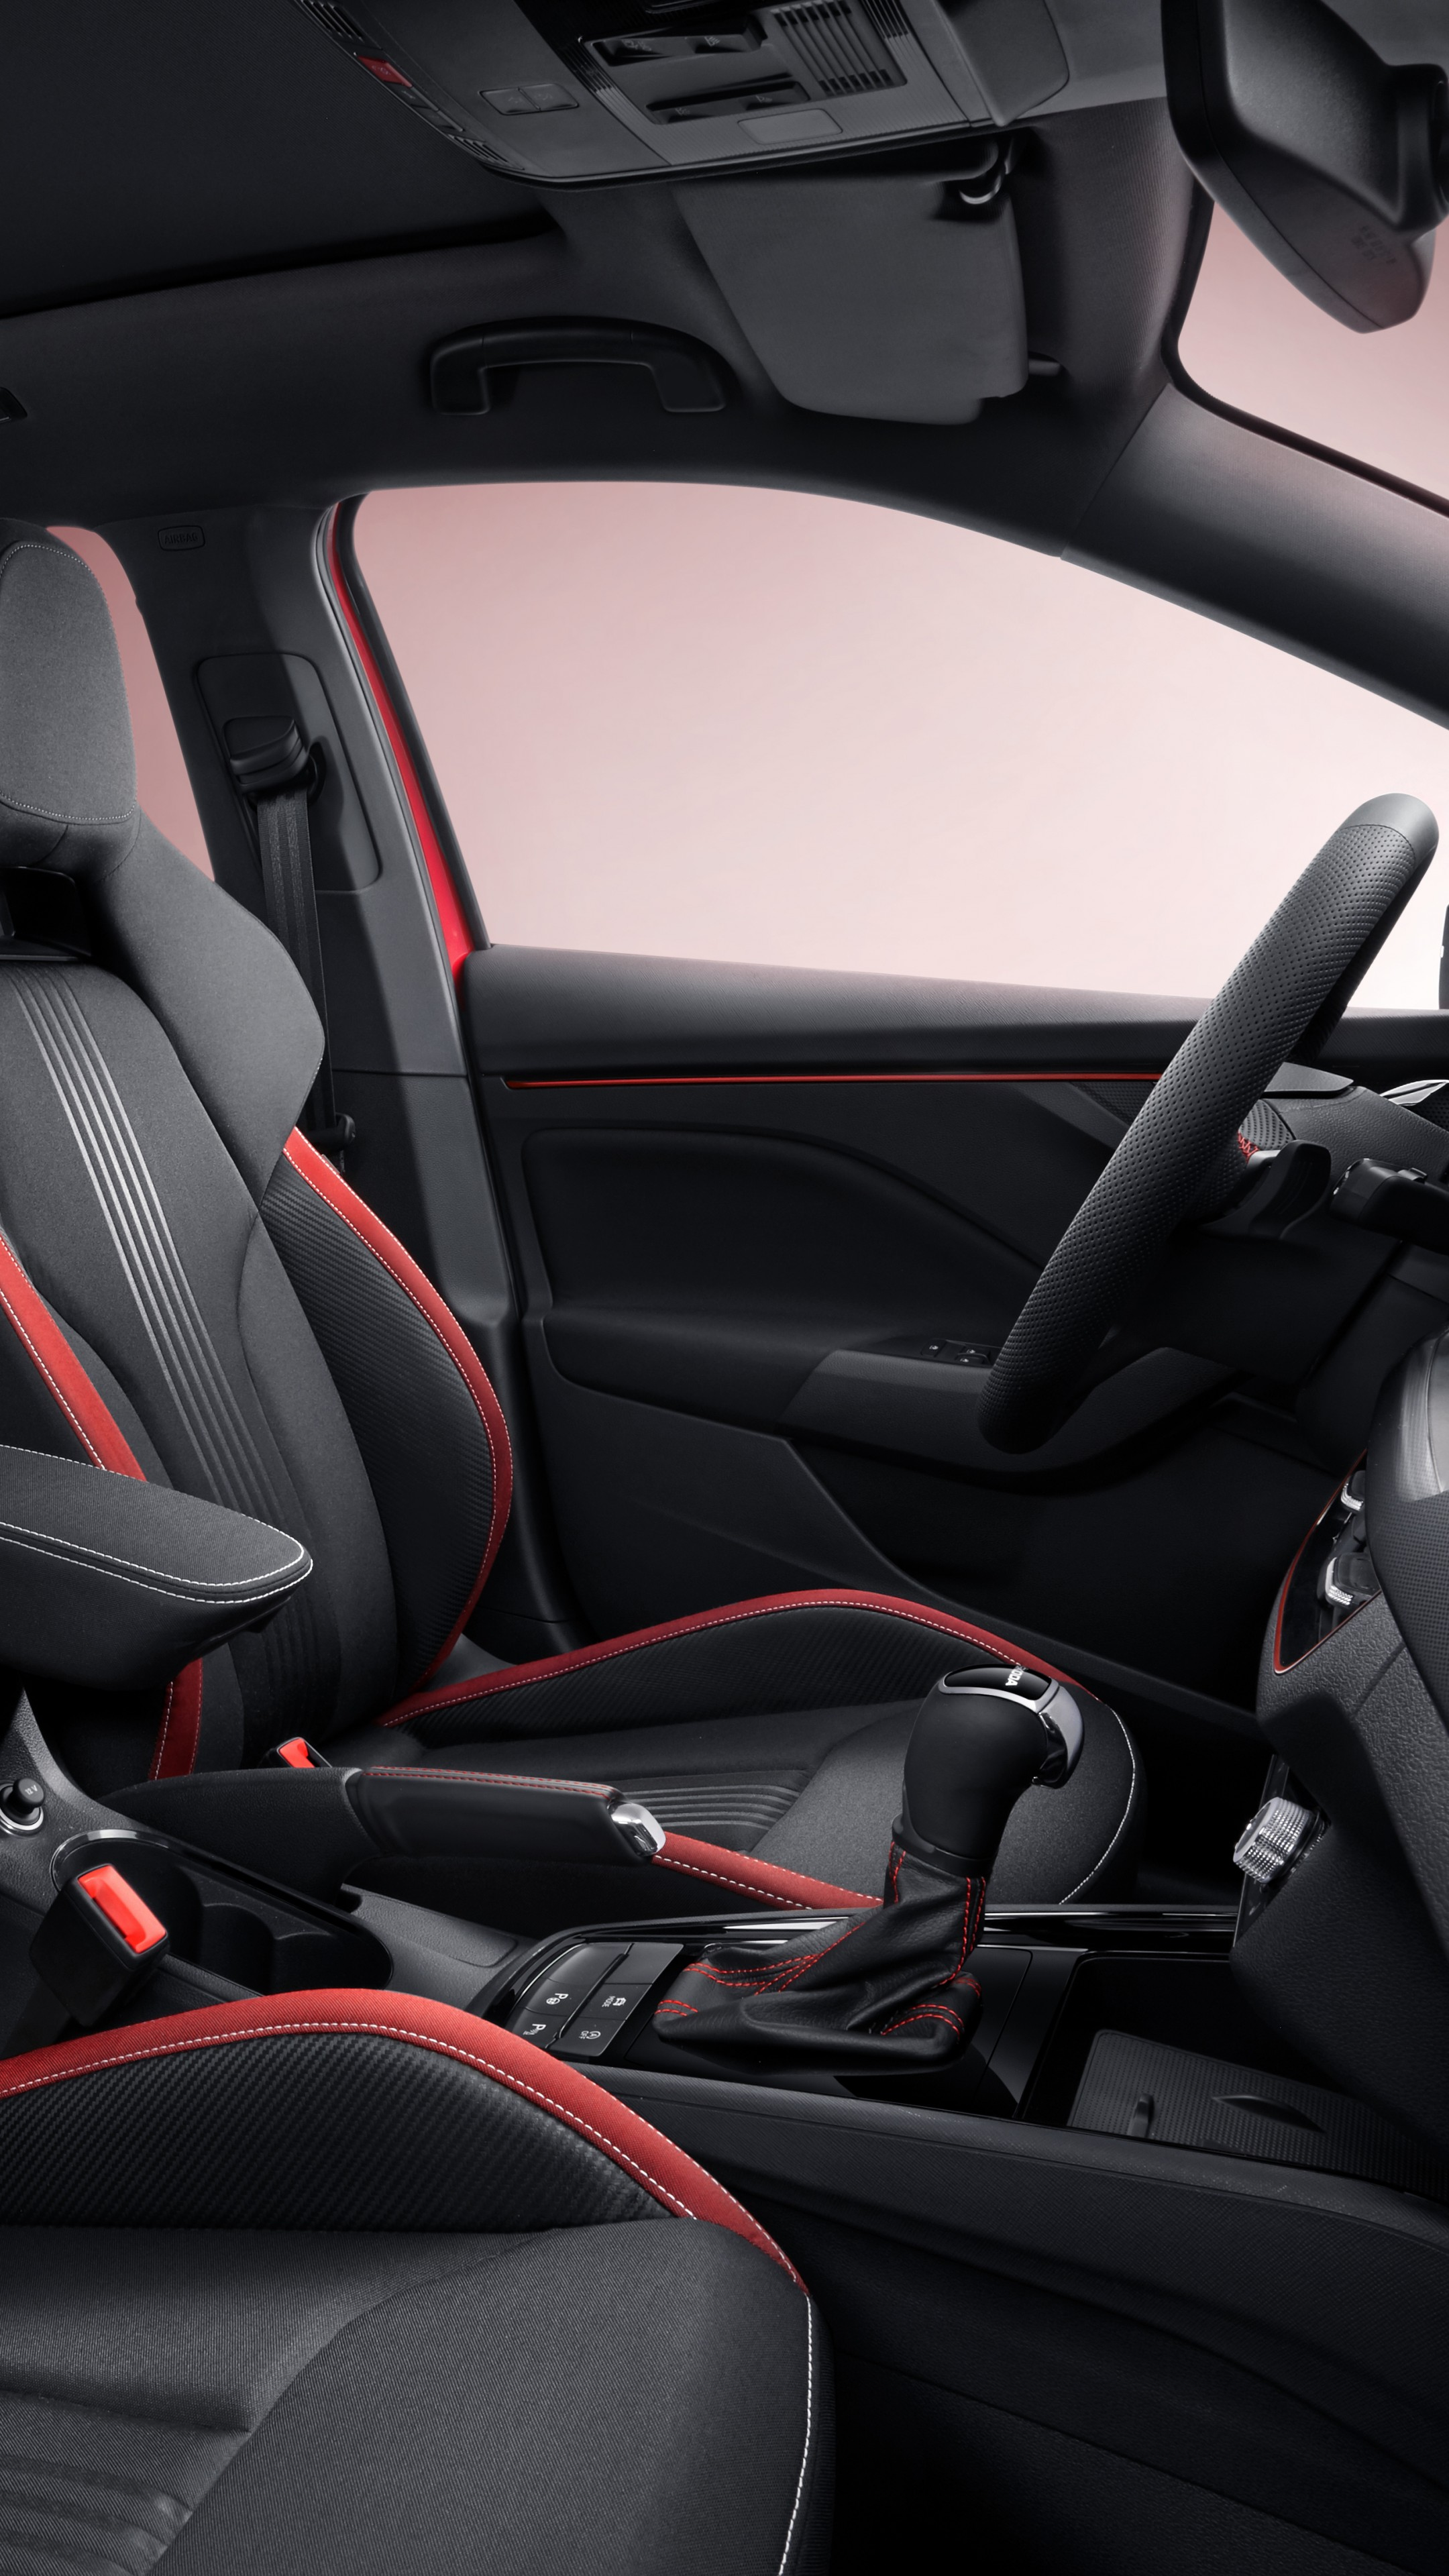 Wallpaper Skoda Scala Monte Carlo Interior 2019 Cars 5k Cars Bikes 22228